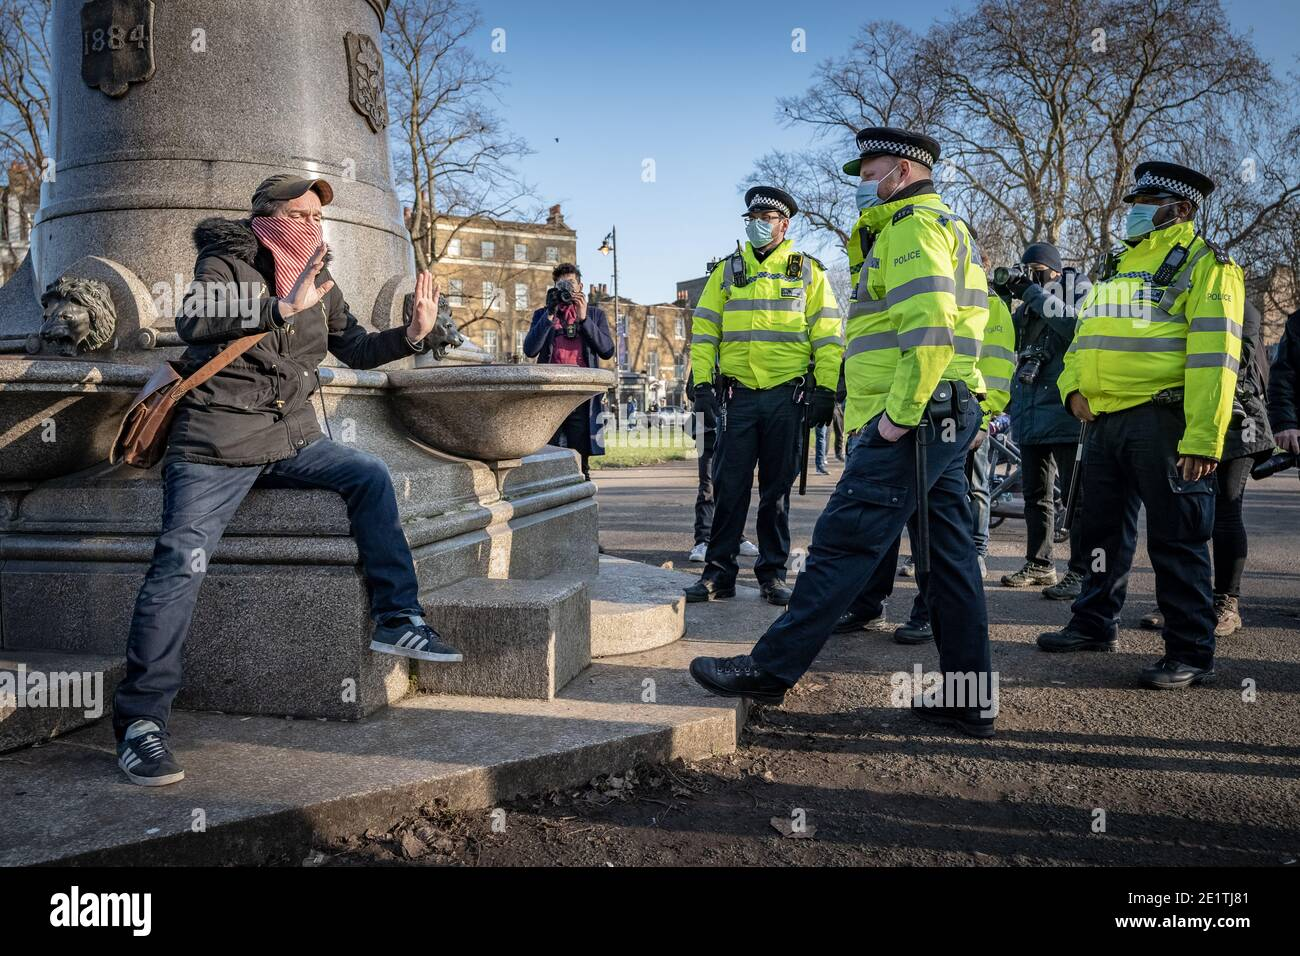 Coronavirus: Arrests are made during an attempted anti-lockdown gathering in Clapham Common against the current government COVID19 restrictions, UK. Stock Photo